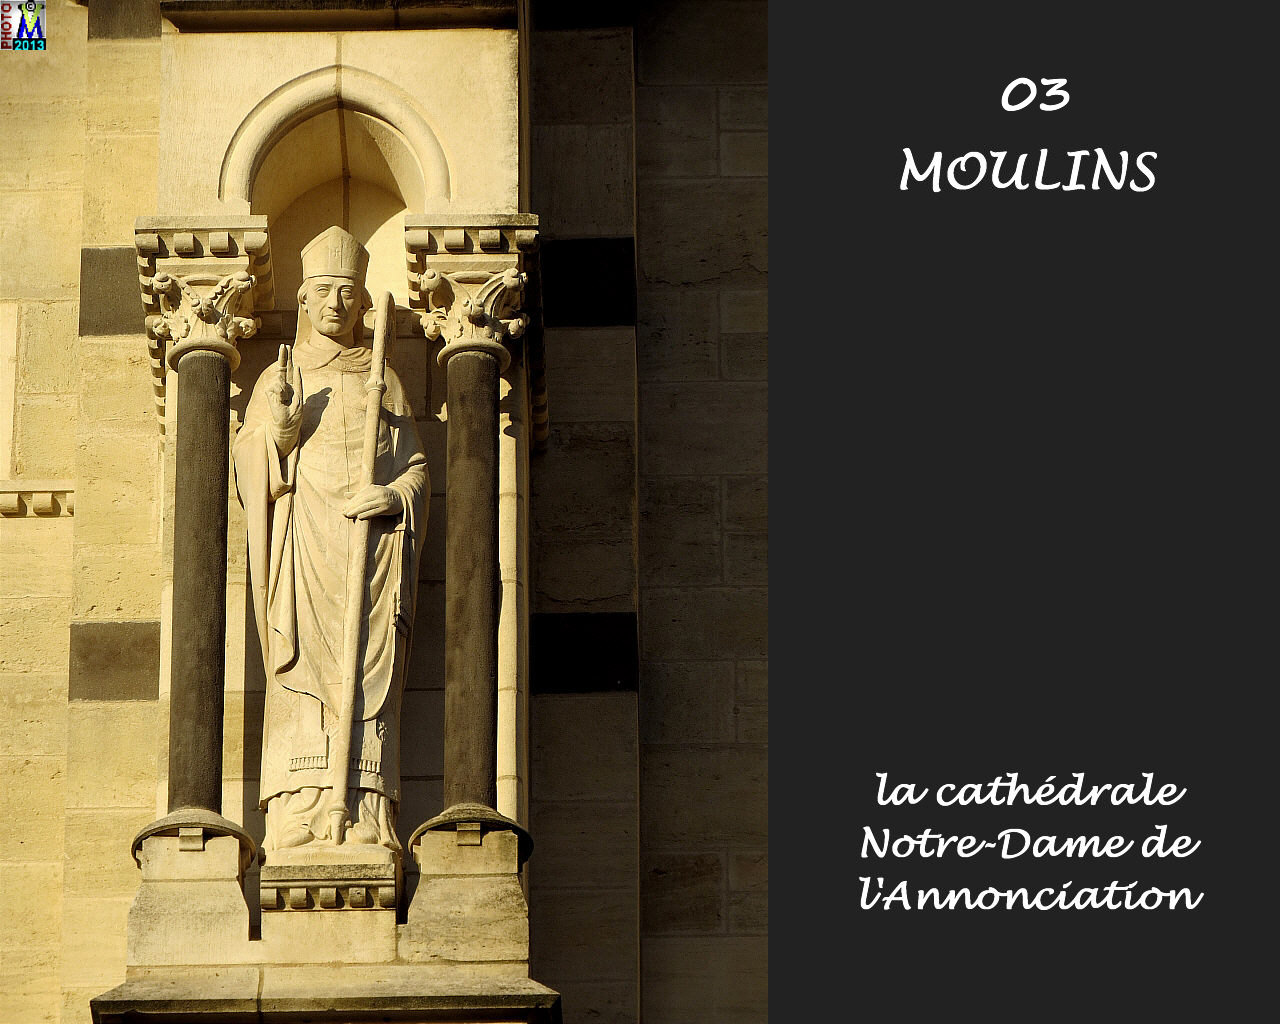 03MOULINS_cathedrale_126.jpg